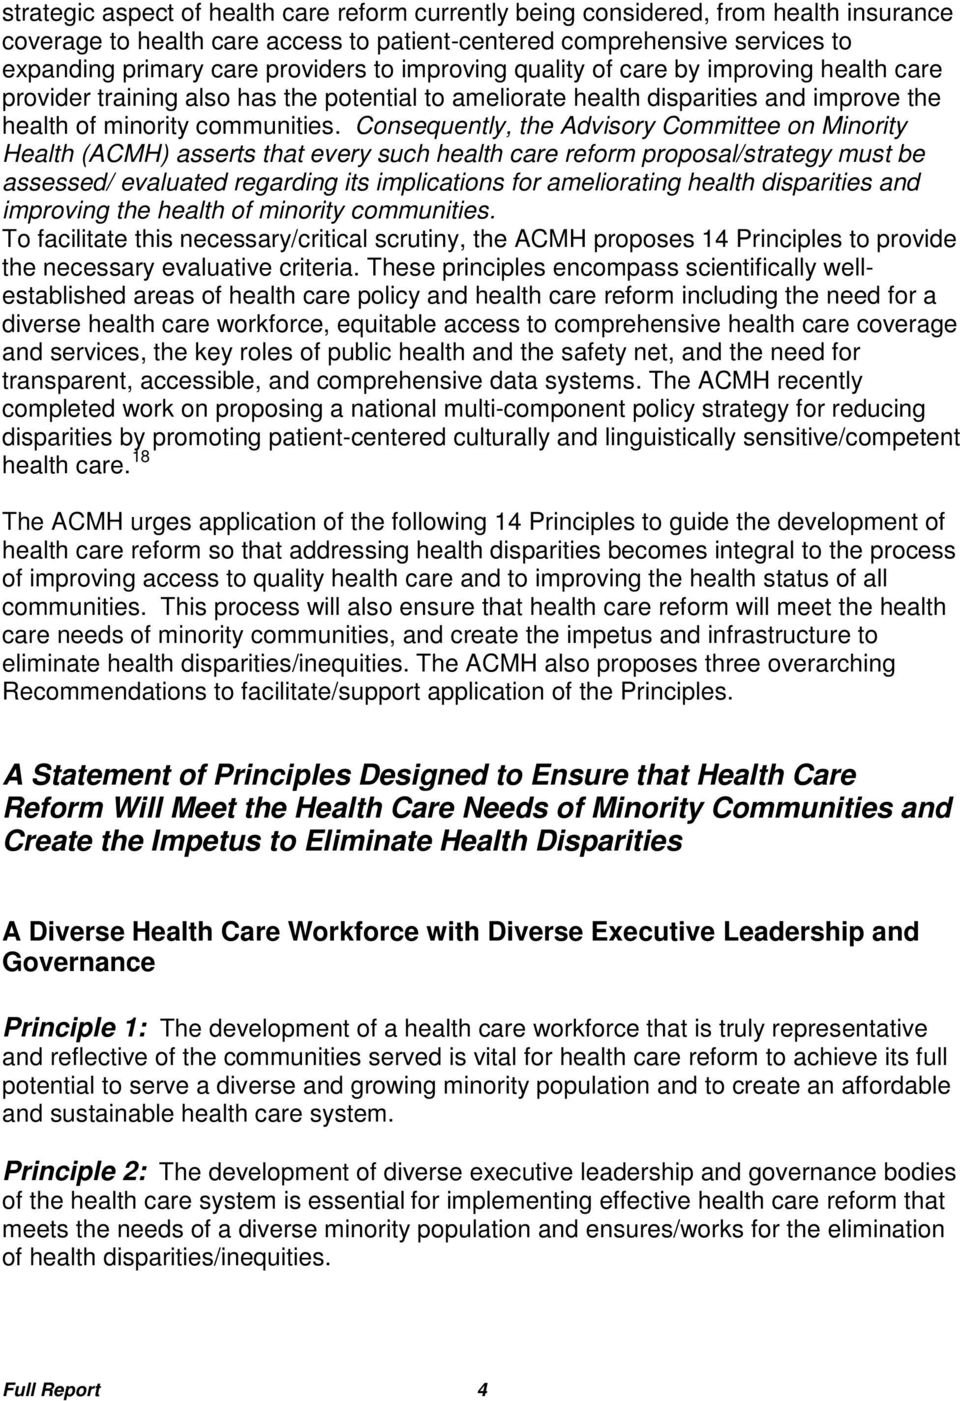 Consequently, the Advisory Committee on Minority Health (ACMH) asserts that every such health care reform proposal/strategy must be assessed/ evaluated regarding its implications for ameliorating